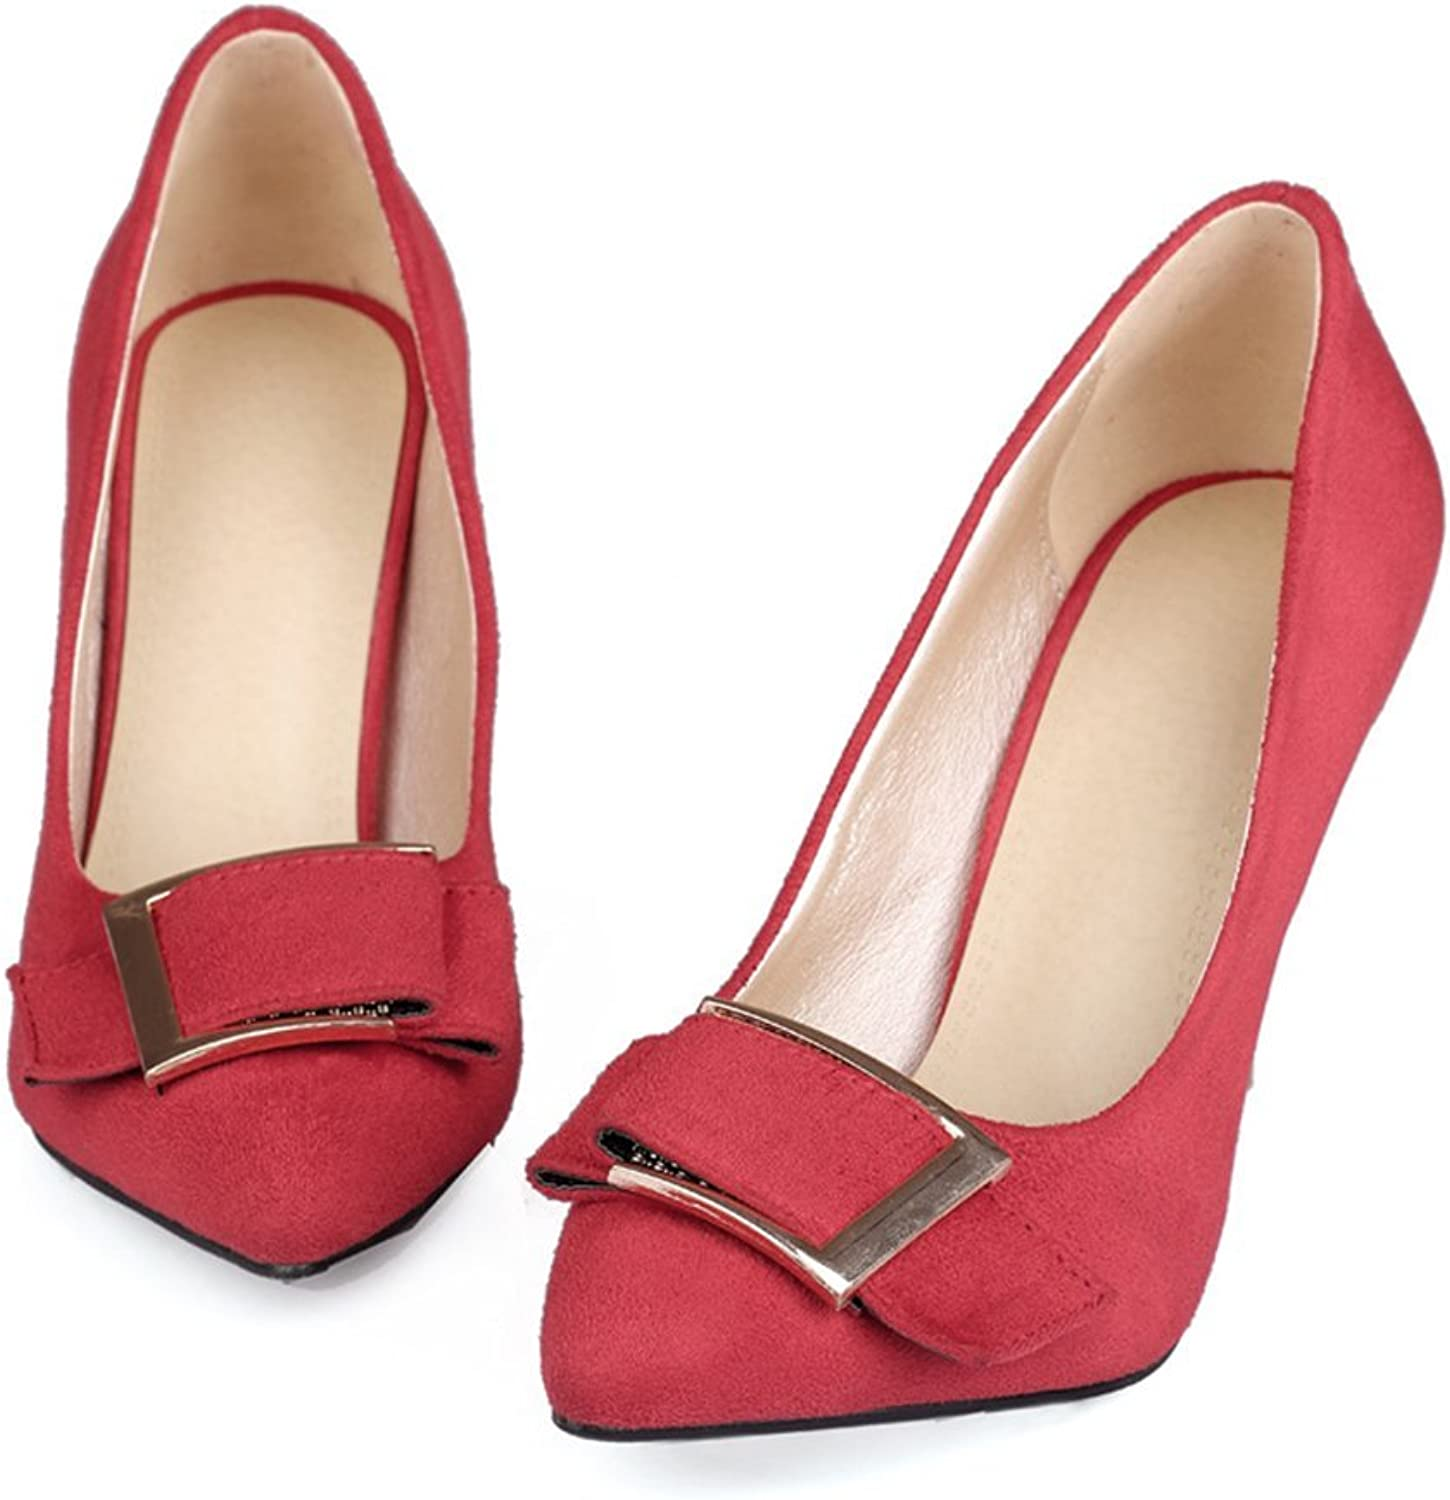 High-Heeled Women's shoes Pointed shoes Female Metal Buckle Stiletto High Heel Women's shoes Set Foot shoes